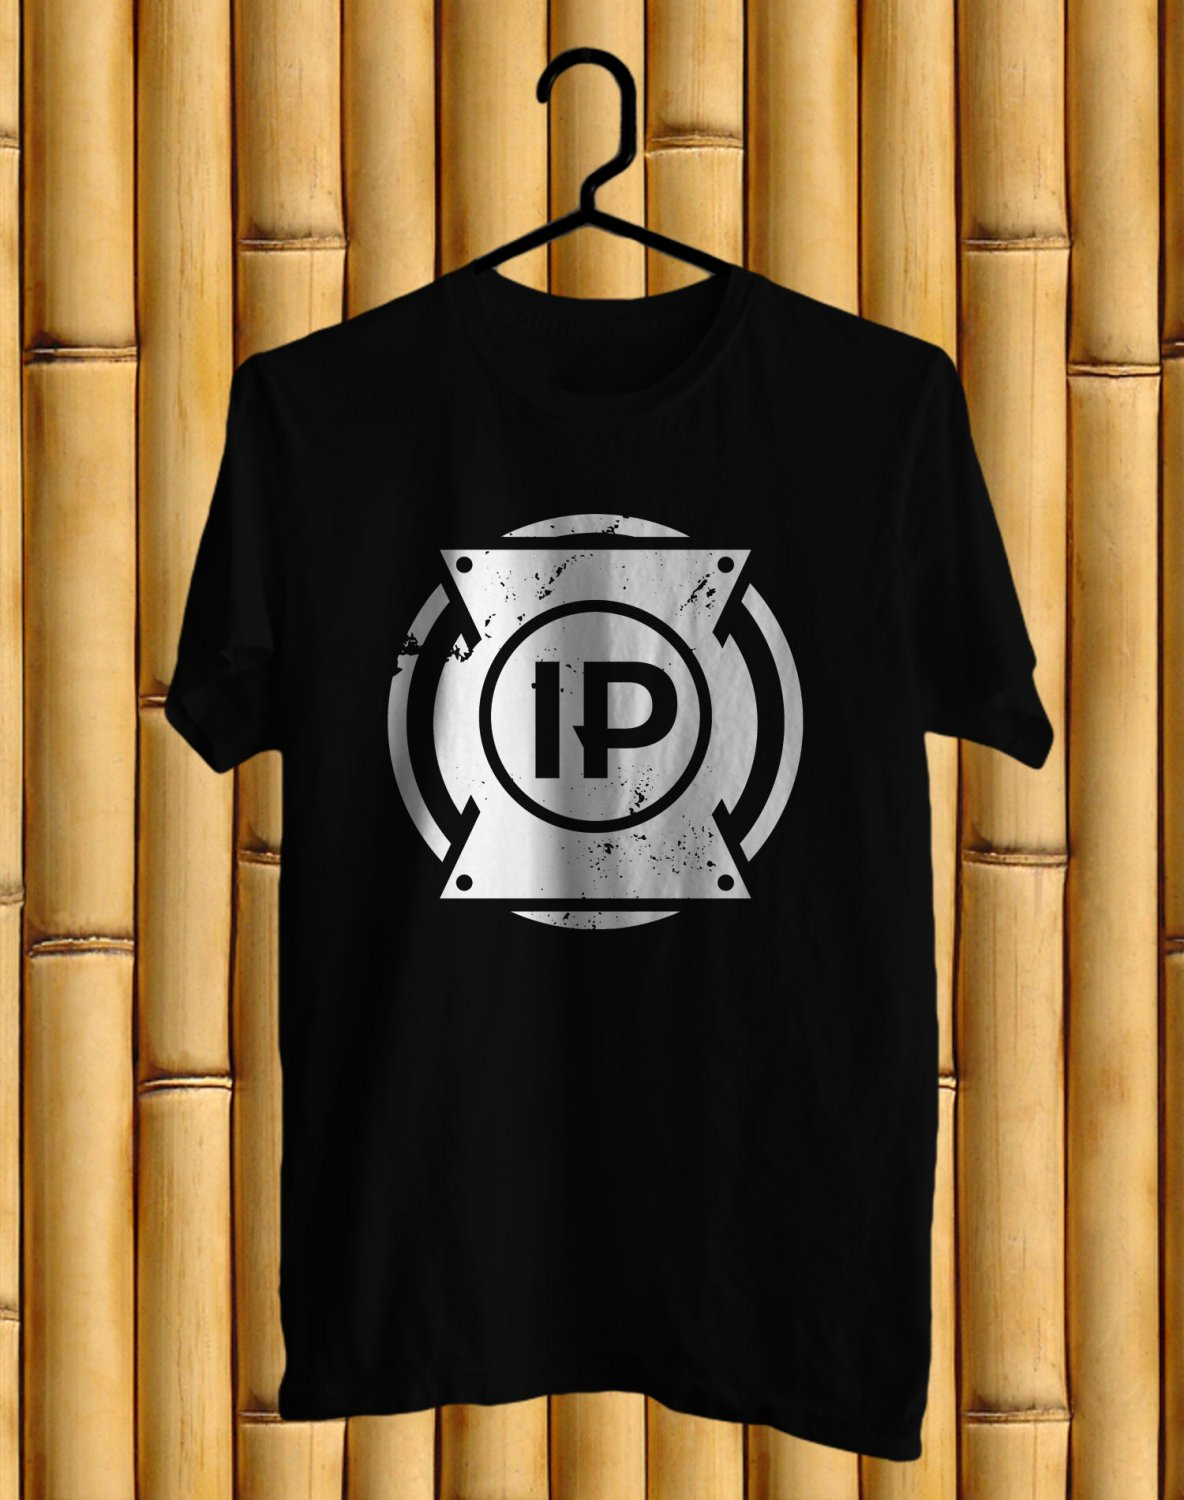 I Prevail Logo Tour 2017 Black Tee's Front Side by Complexart